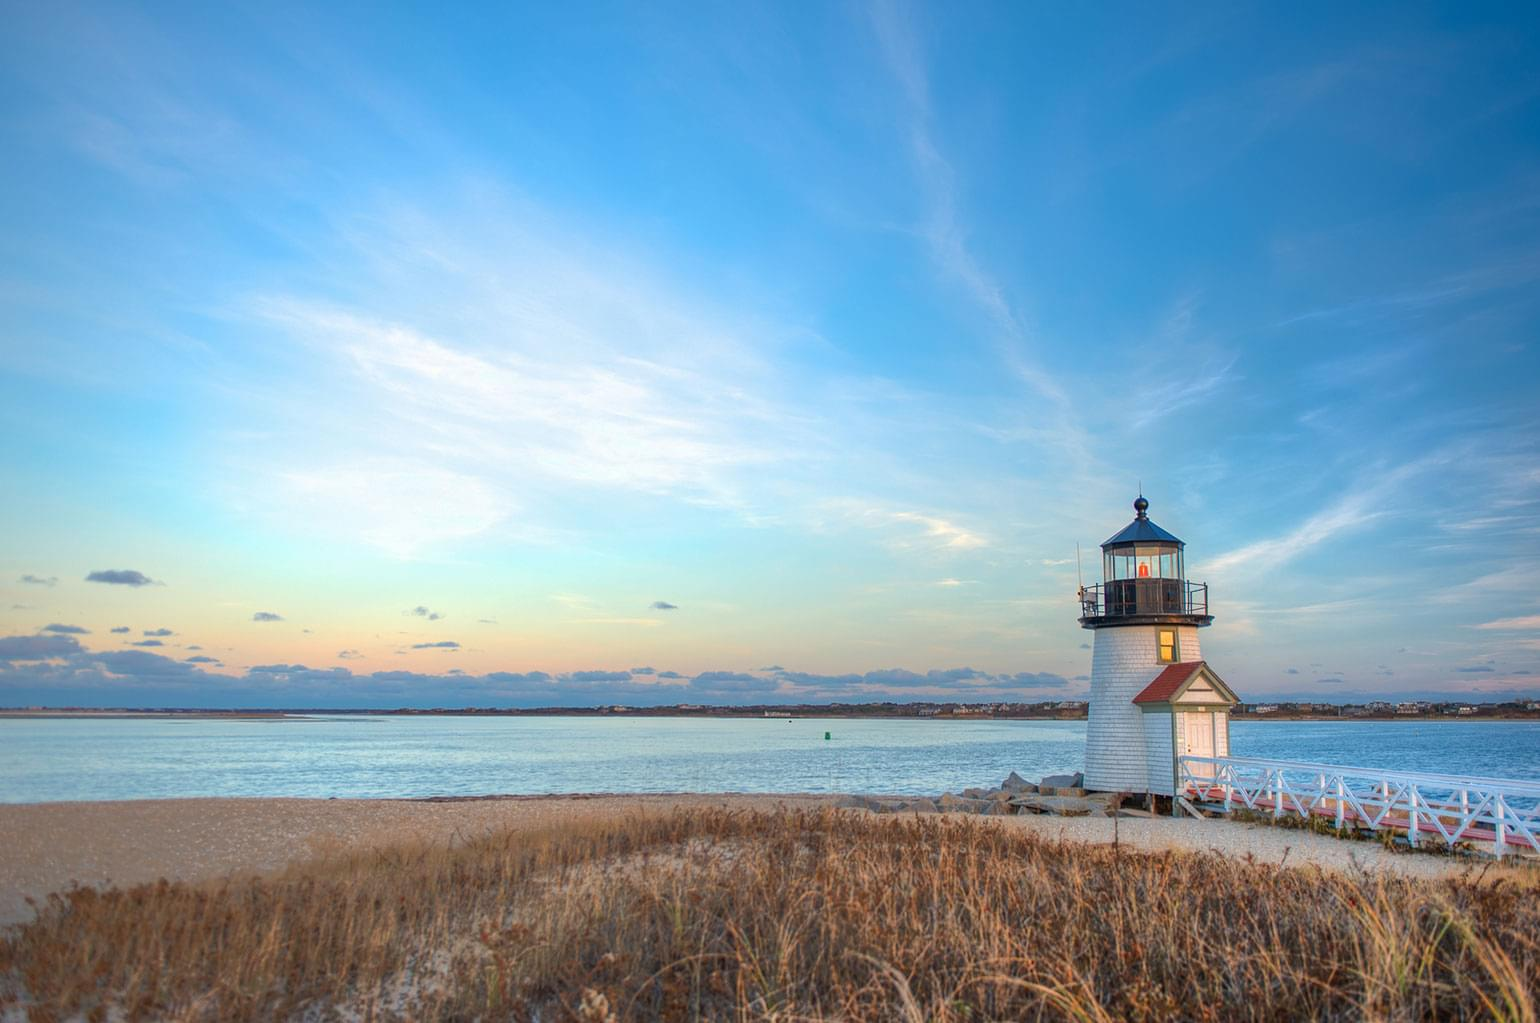 A traditional light house on the beach at Cape Cod, Massachusetts.